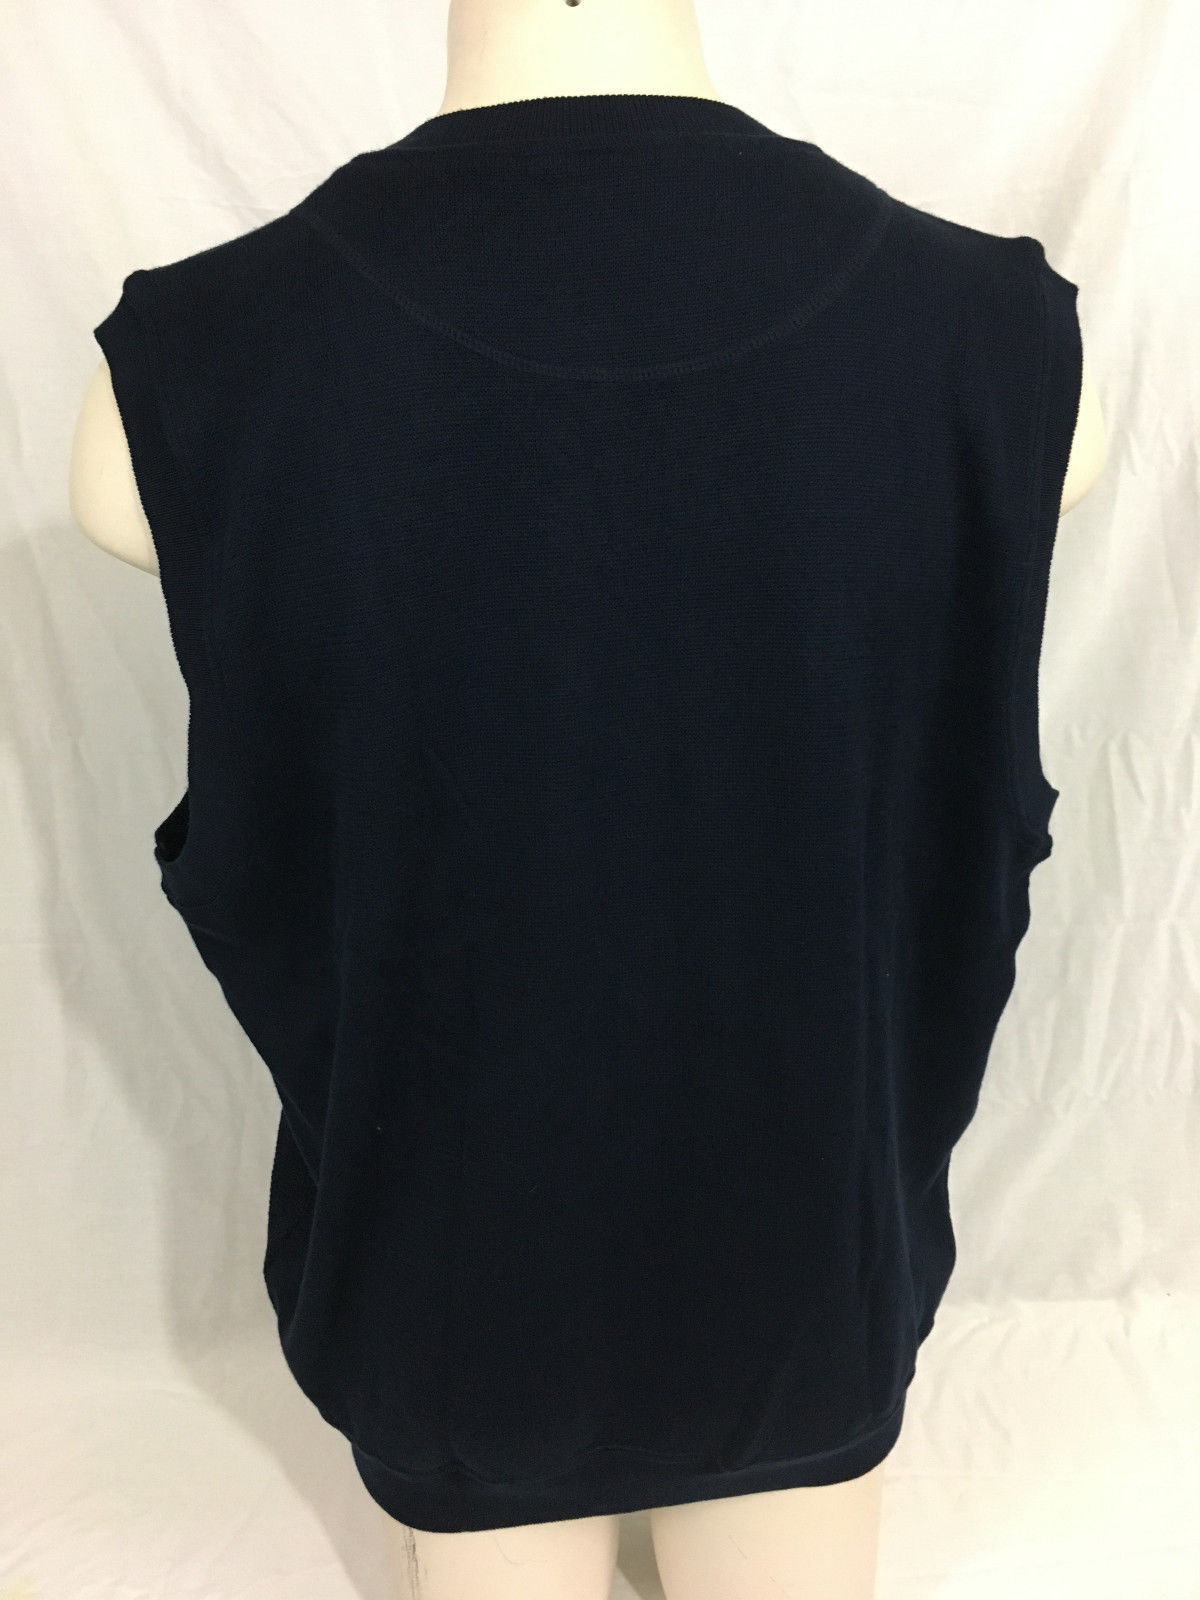 Cutter & Buck Dark Navy Vest RCA Cable Knit New With Tags Men's XL image 3